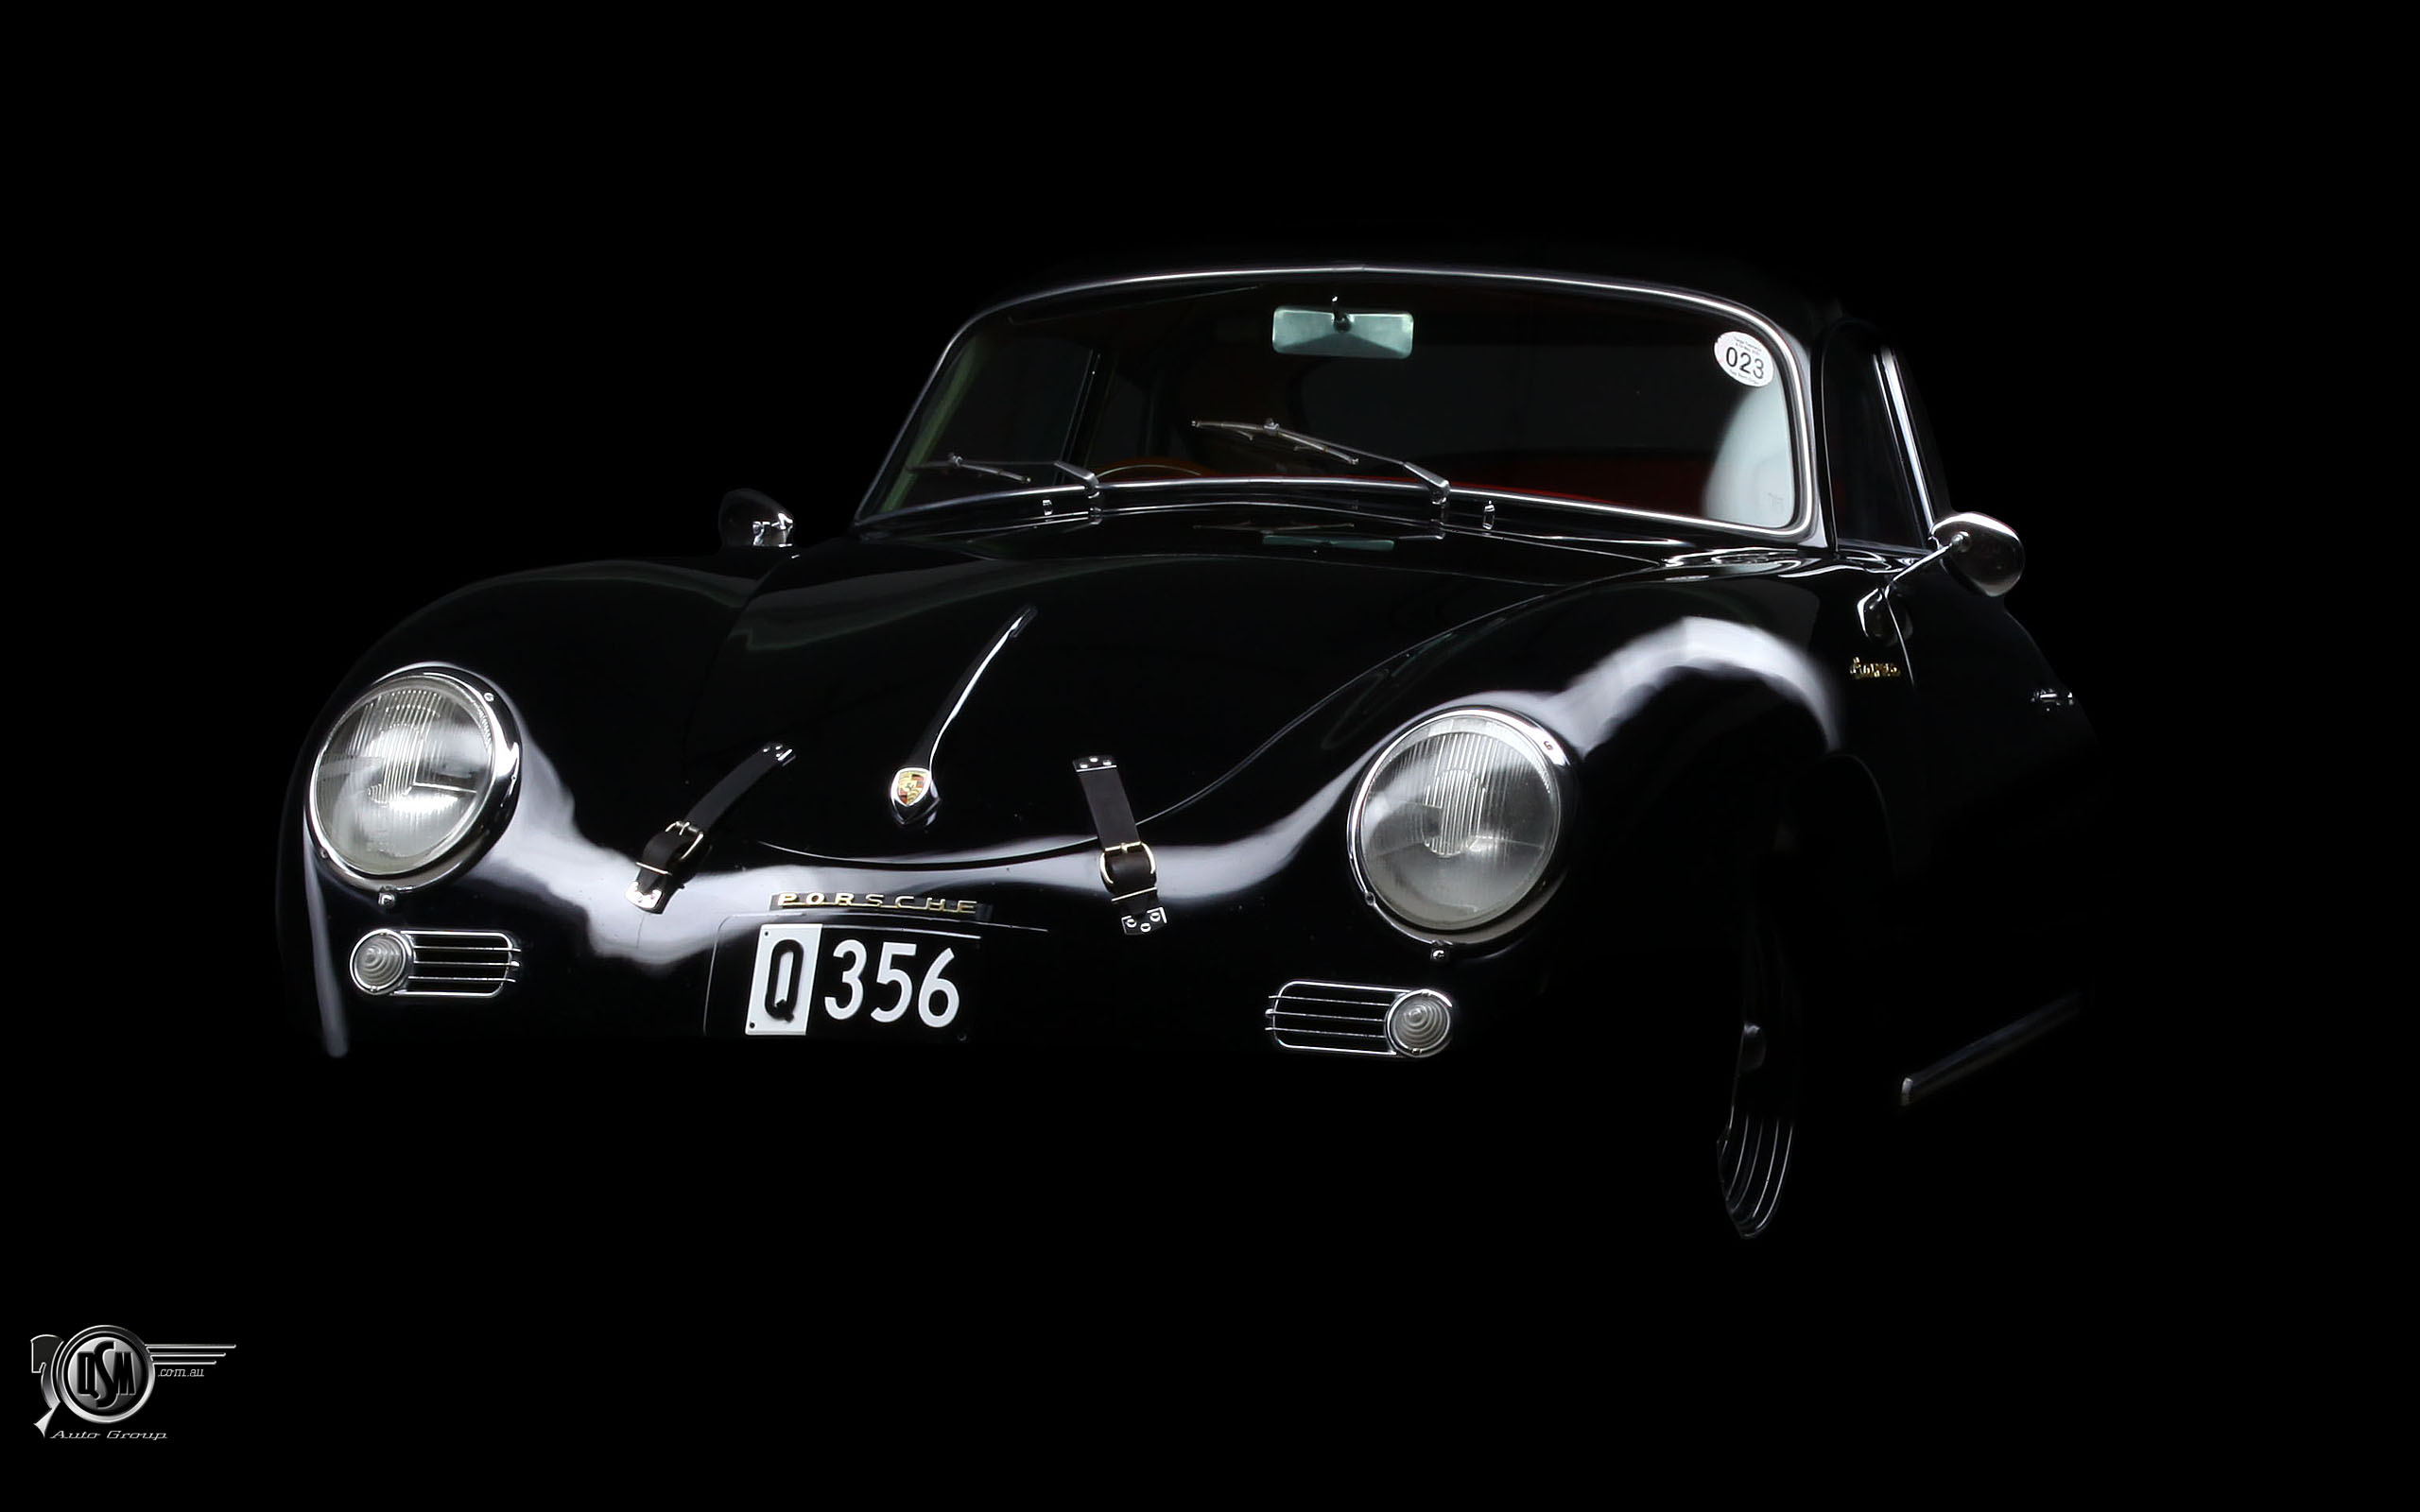 Black And White Vintage Car Wallpaper Qsm Auto Group Porsche Turbo 911 964 993 996 997 Boxster